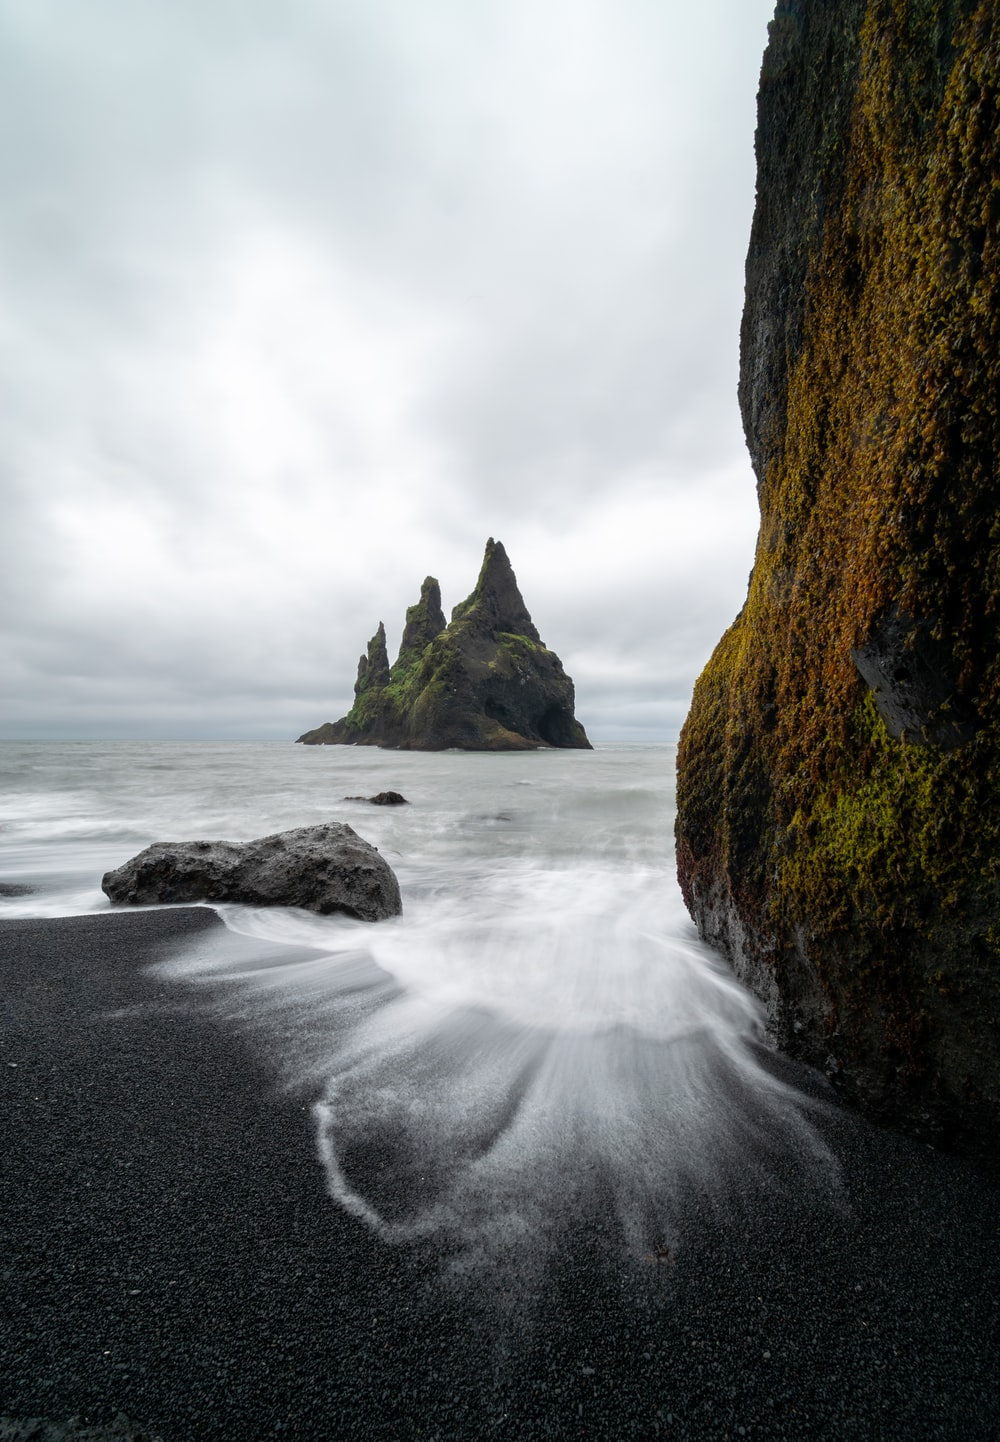 time lapse of shore near rock formation at daytime